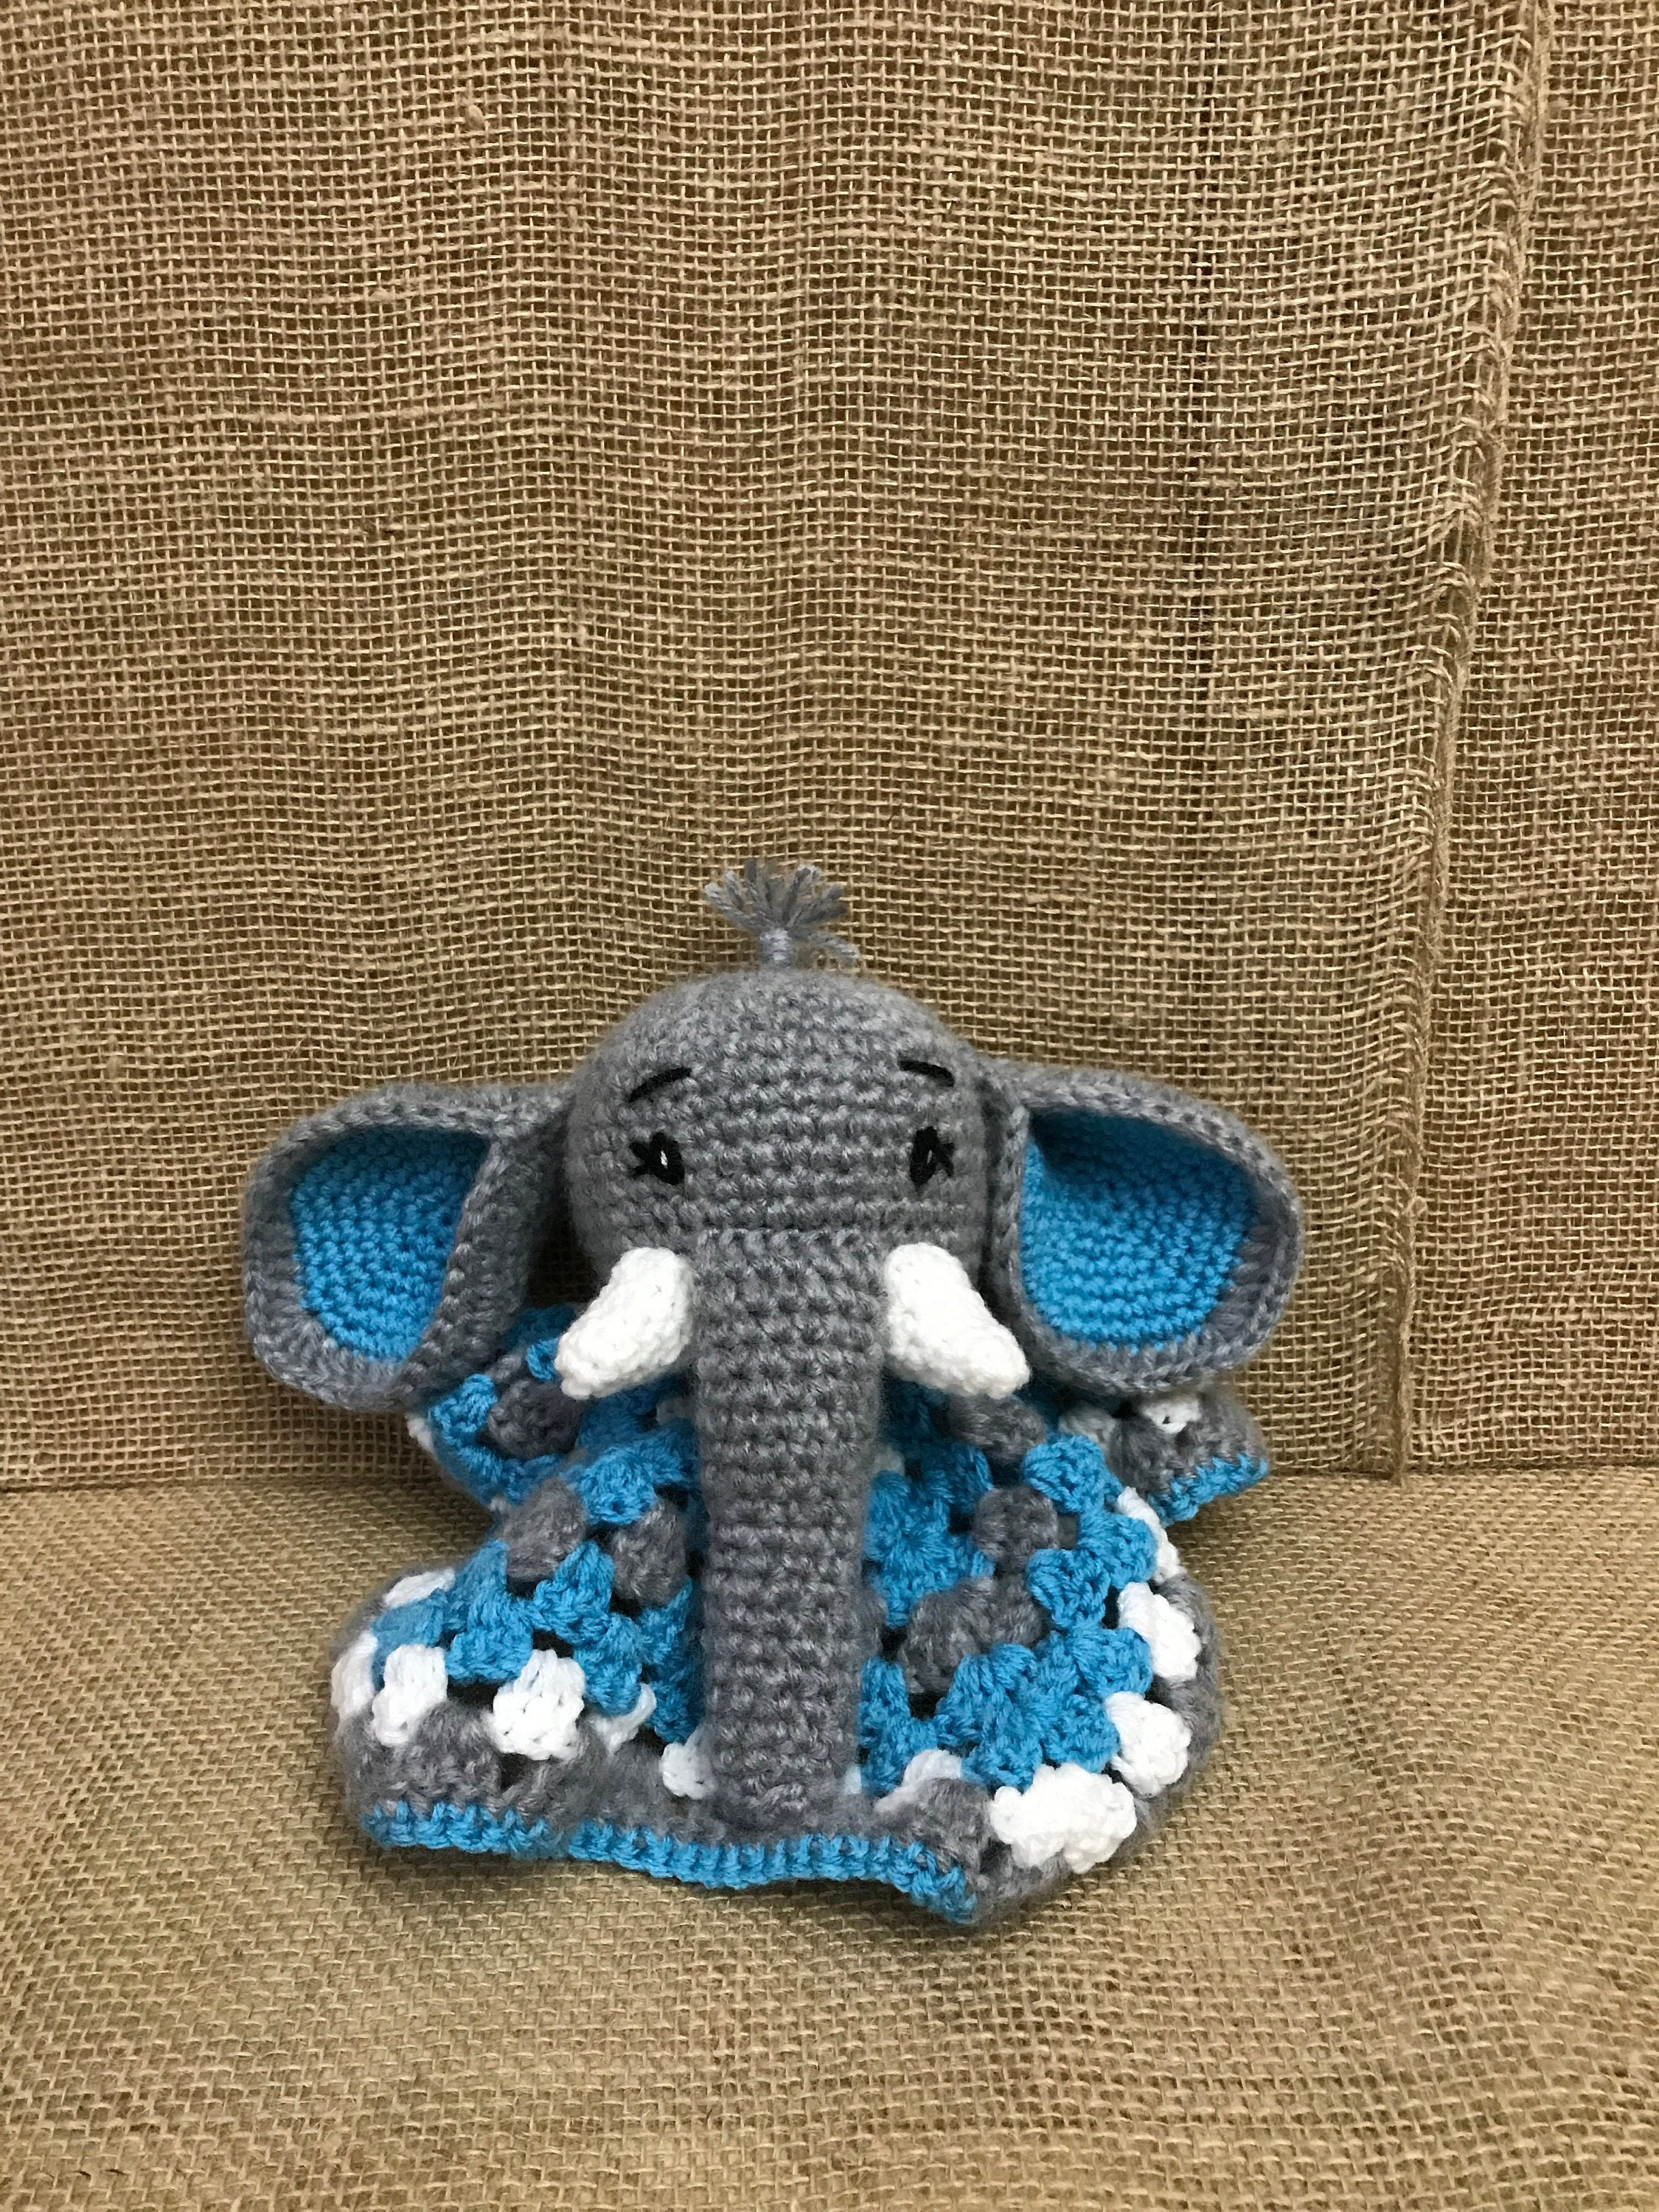 3 in 1 Safari Elephant Baby Blanket Toy Lovey Crochet Kit and ... | 3000x2250